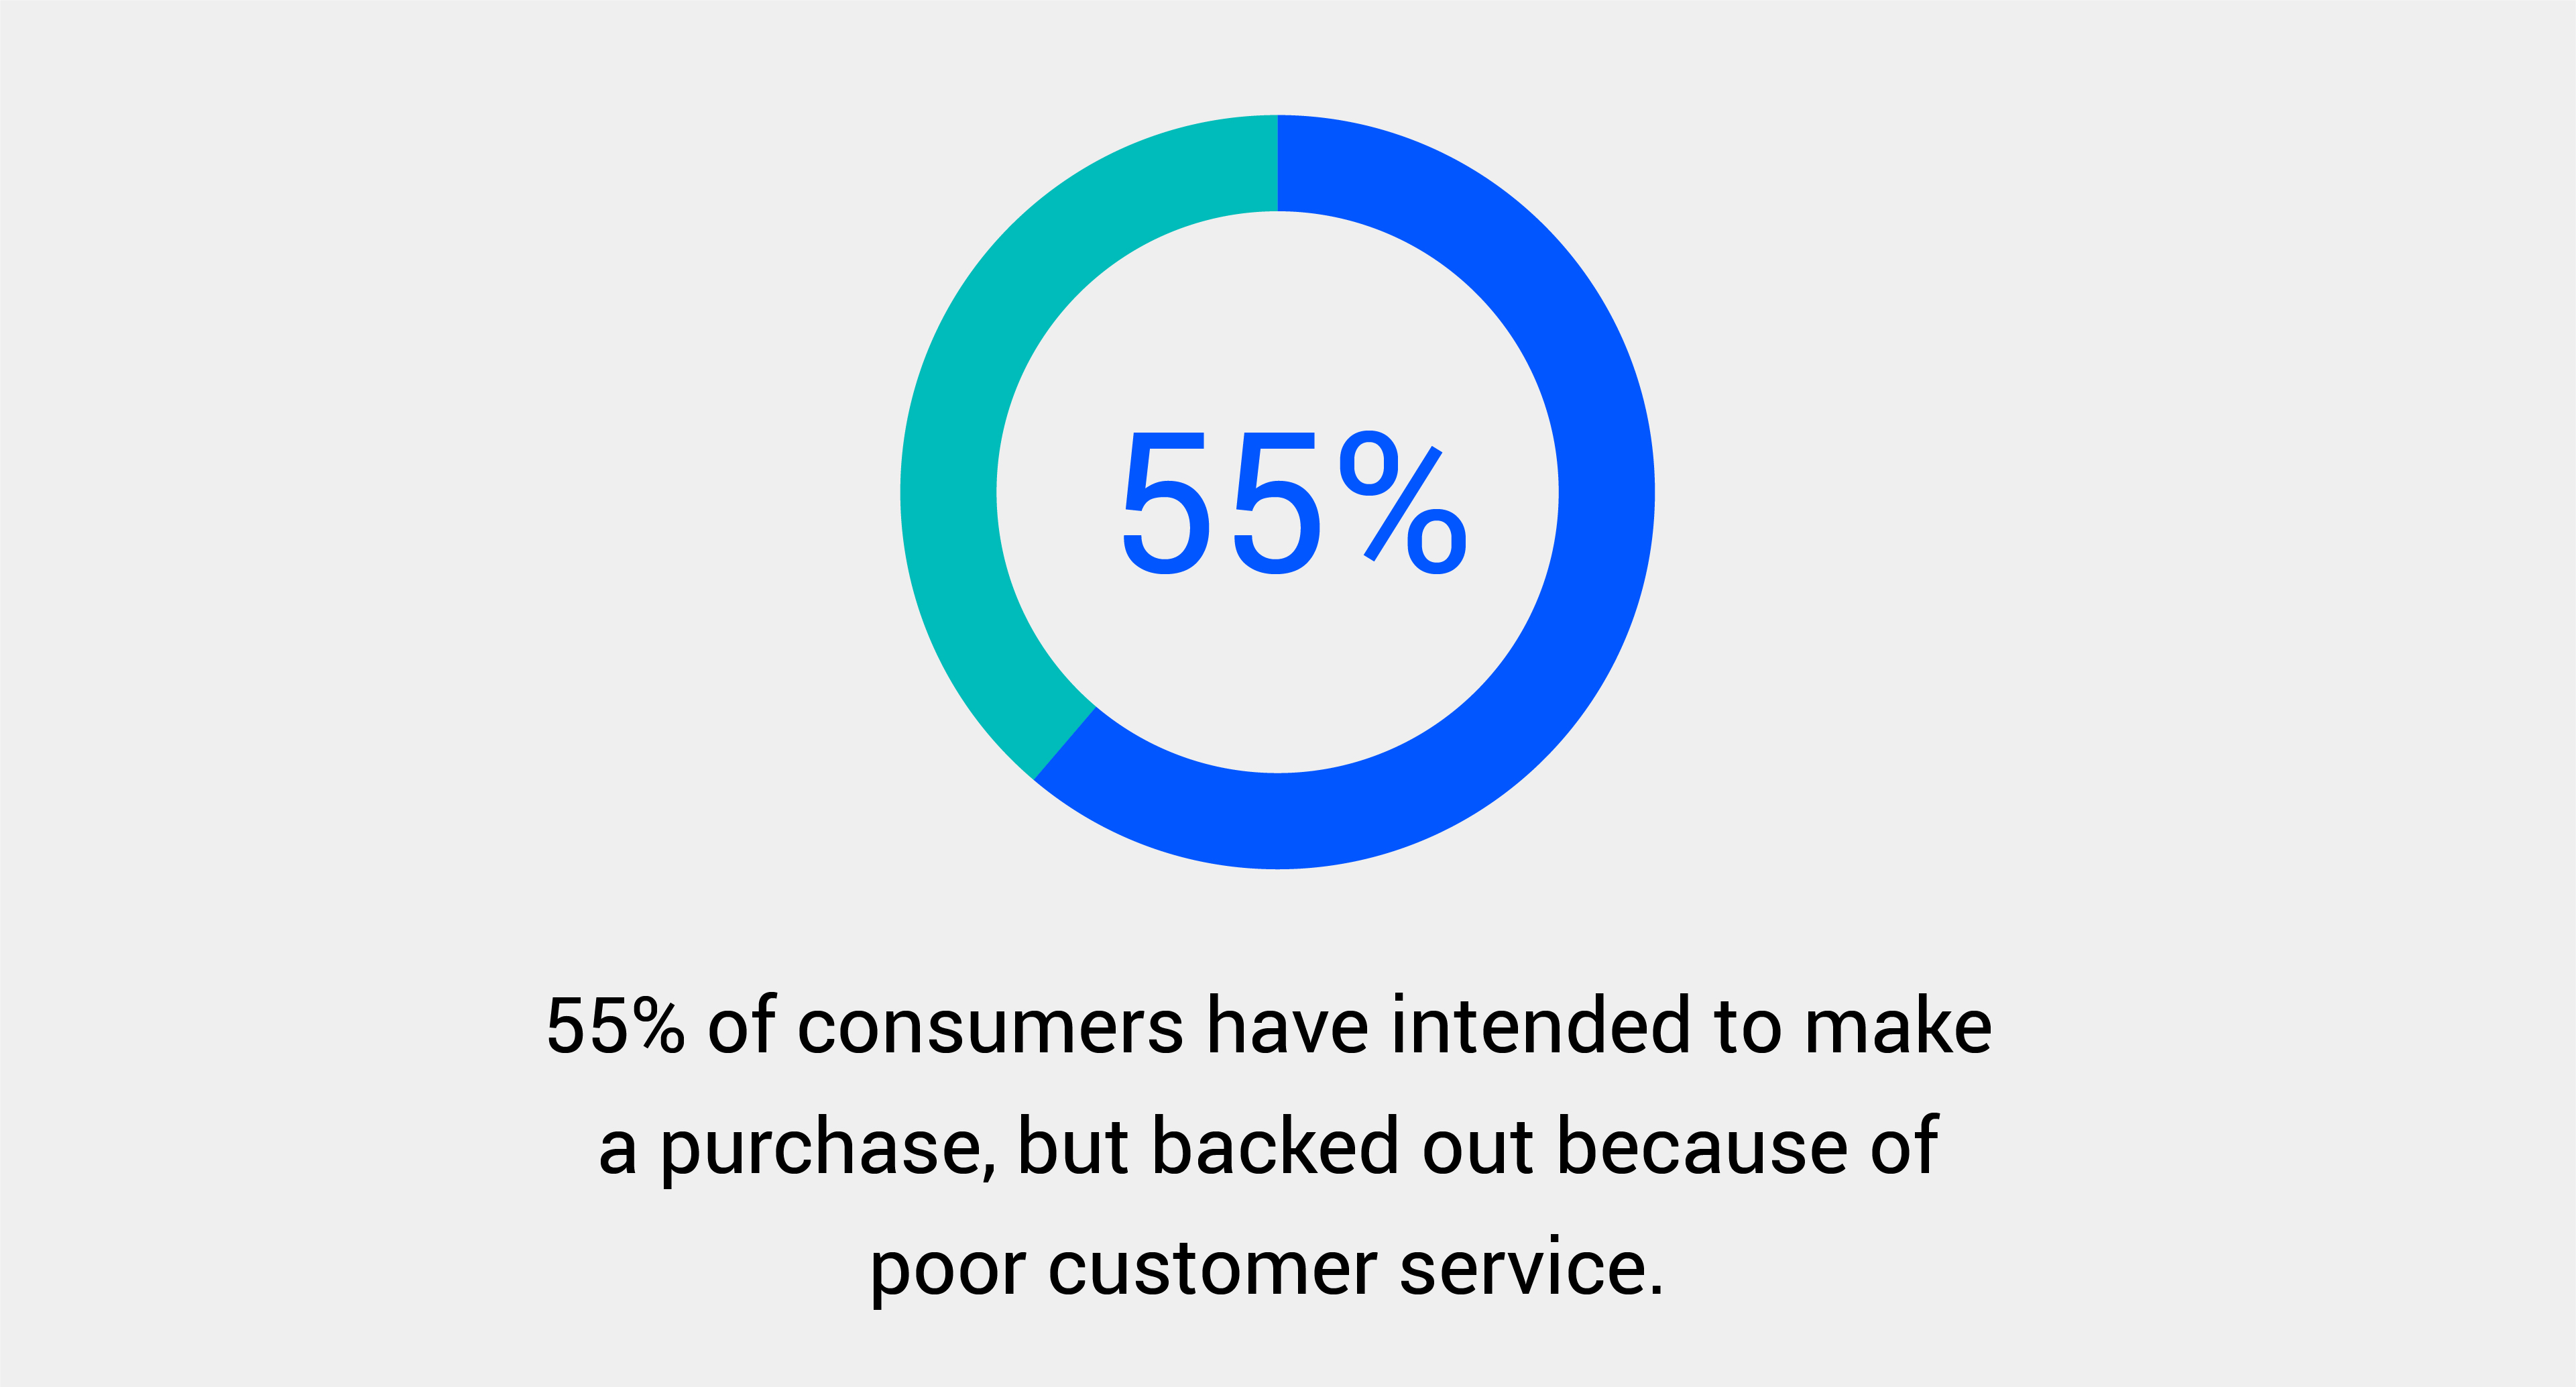 8 Customer Service Challenges and How to Resolve Them in